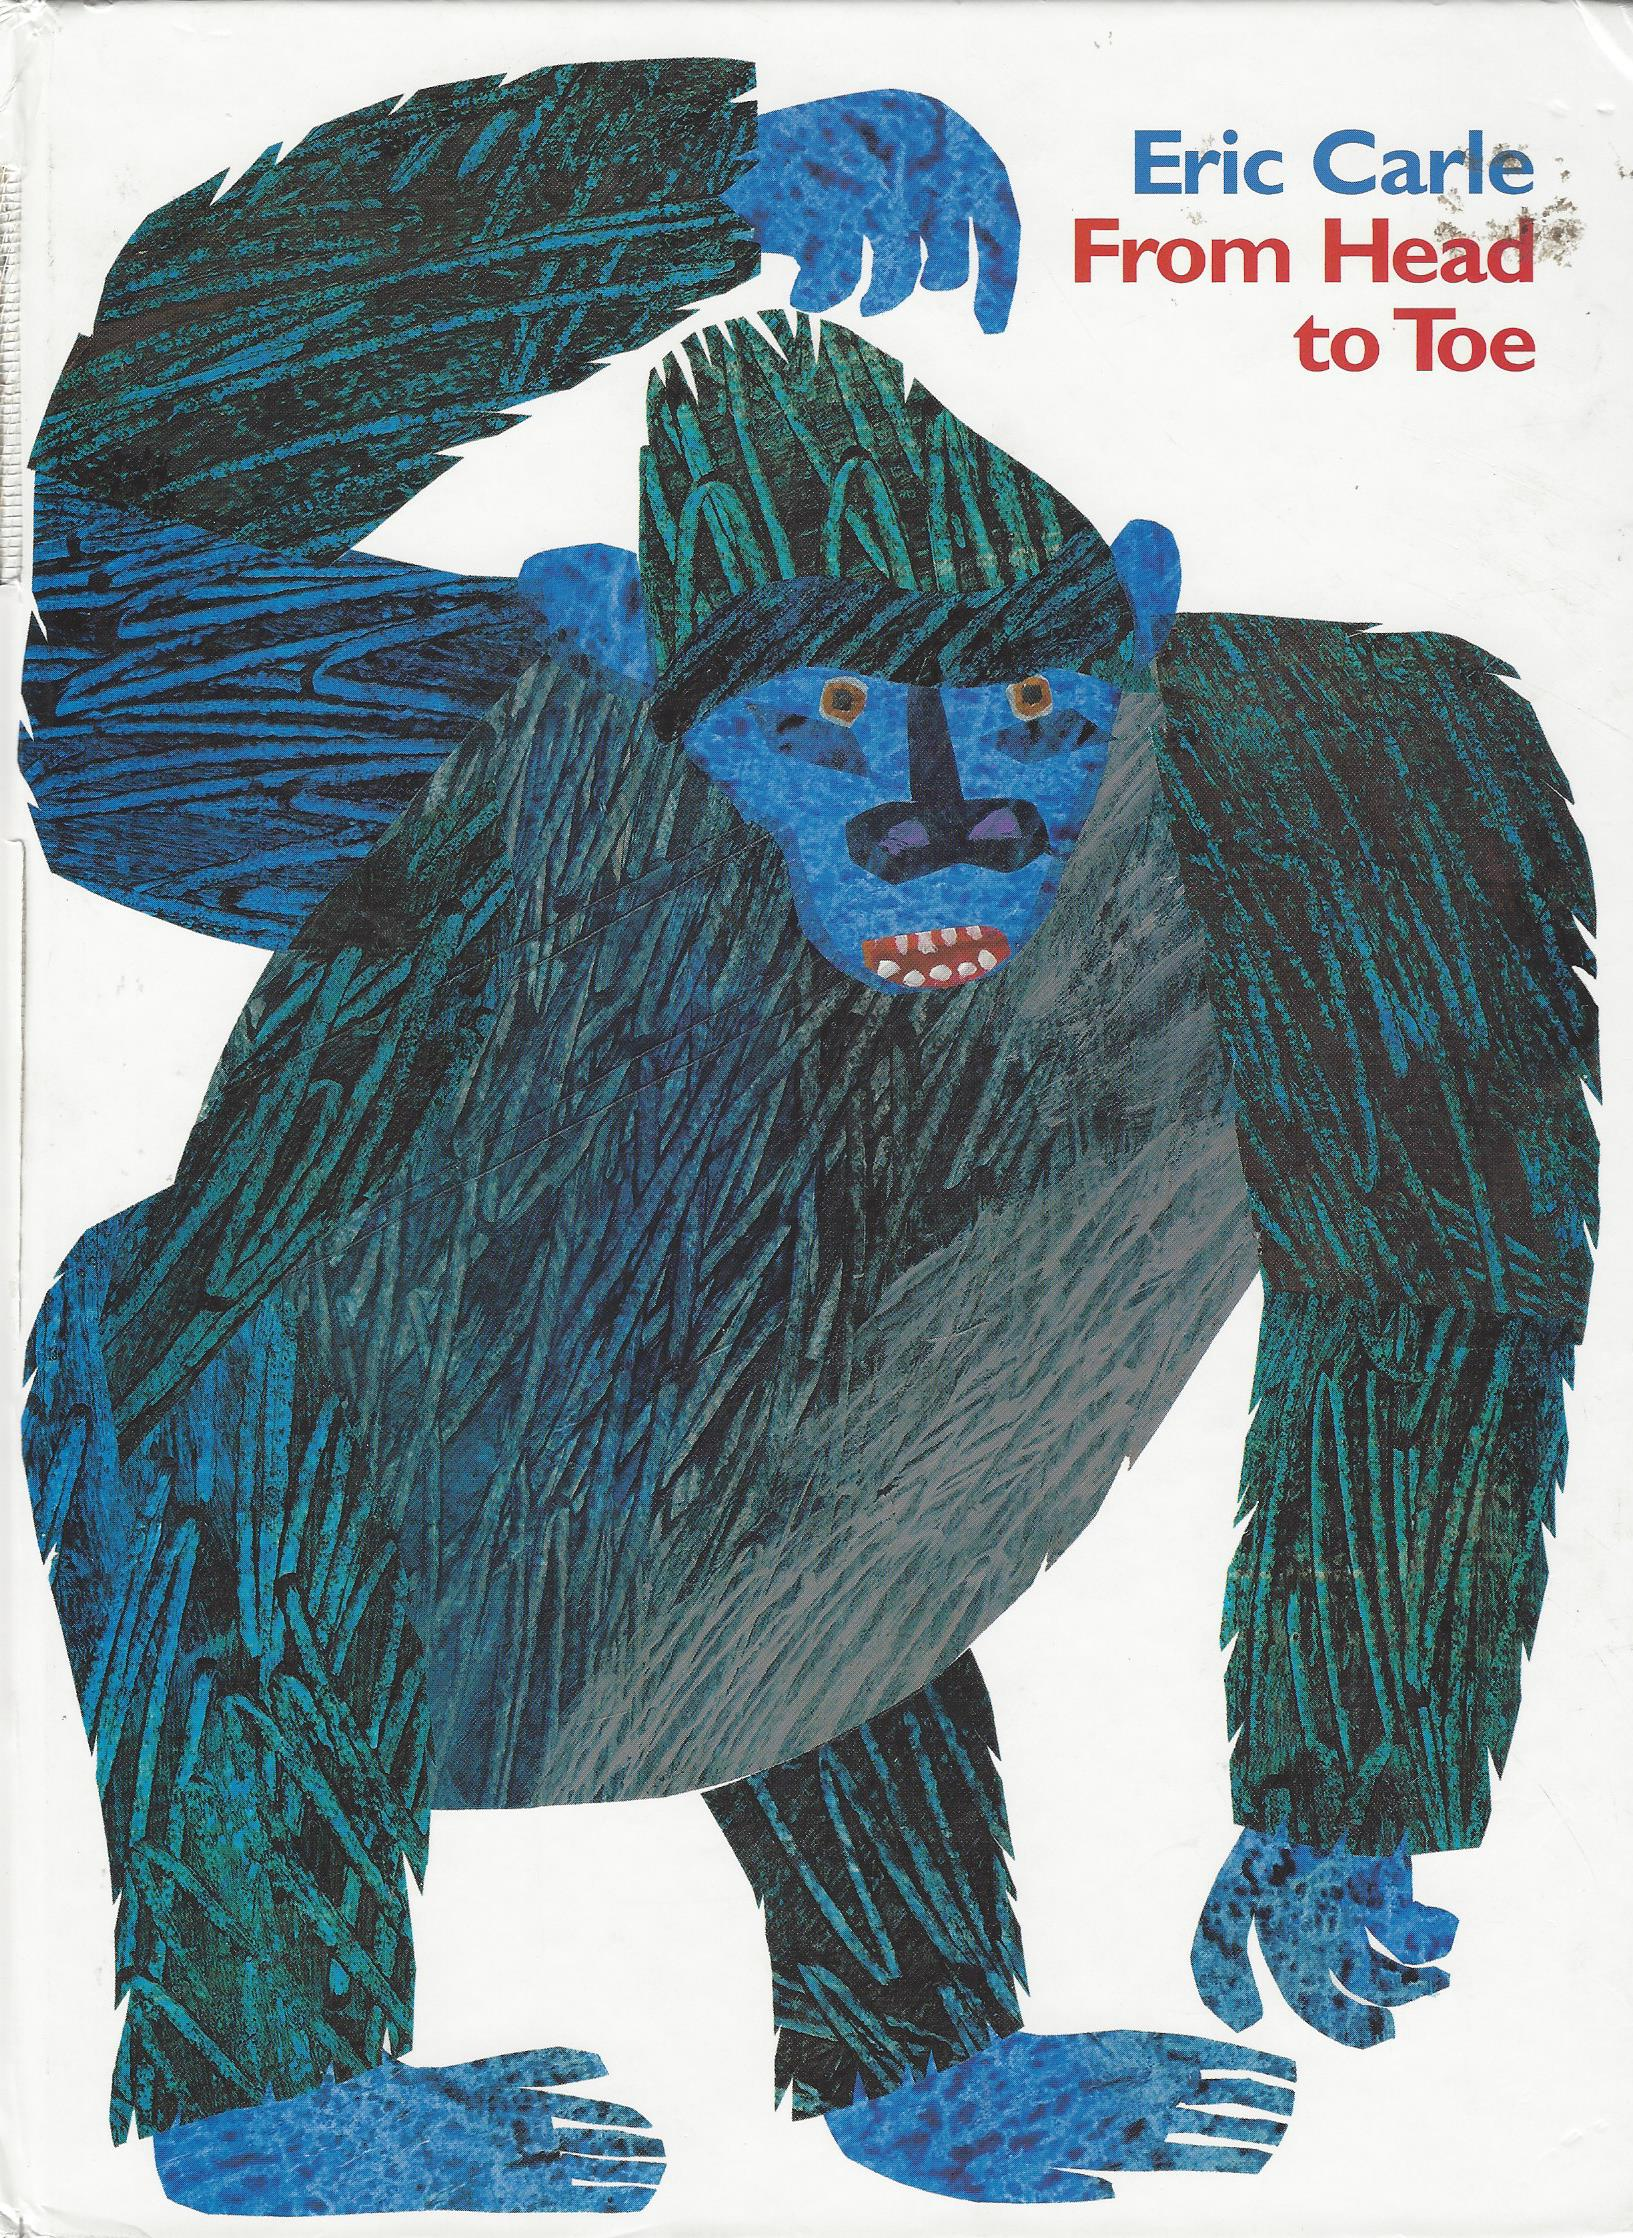 Eric carle from head to toe online dating 10